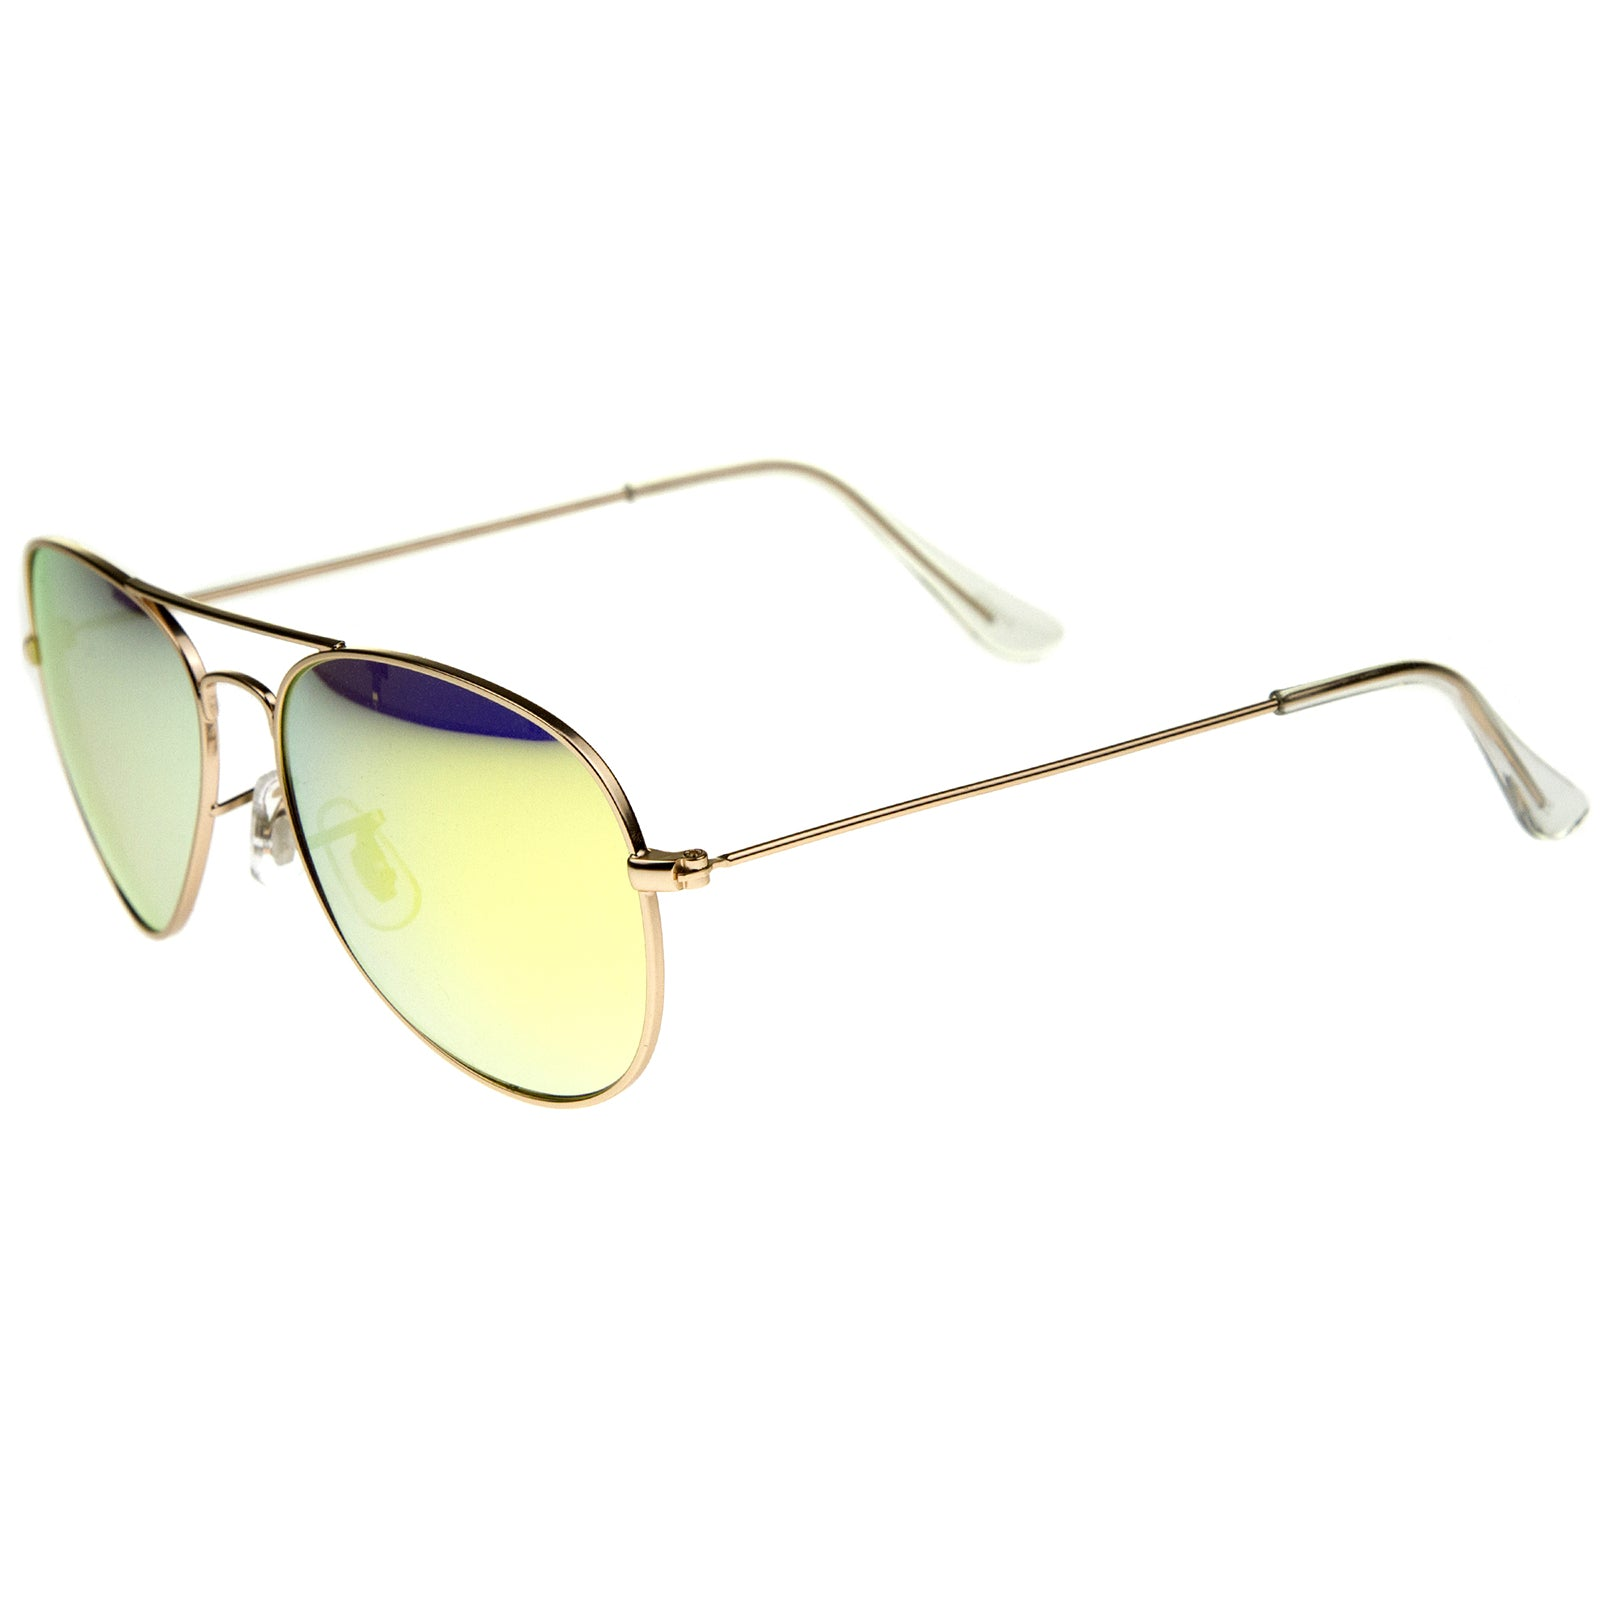 Premium Nickel Plated Frame Multi-Coated Mirror Lens Aviator Sunglasses 59mm - sunglass.la - 15